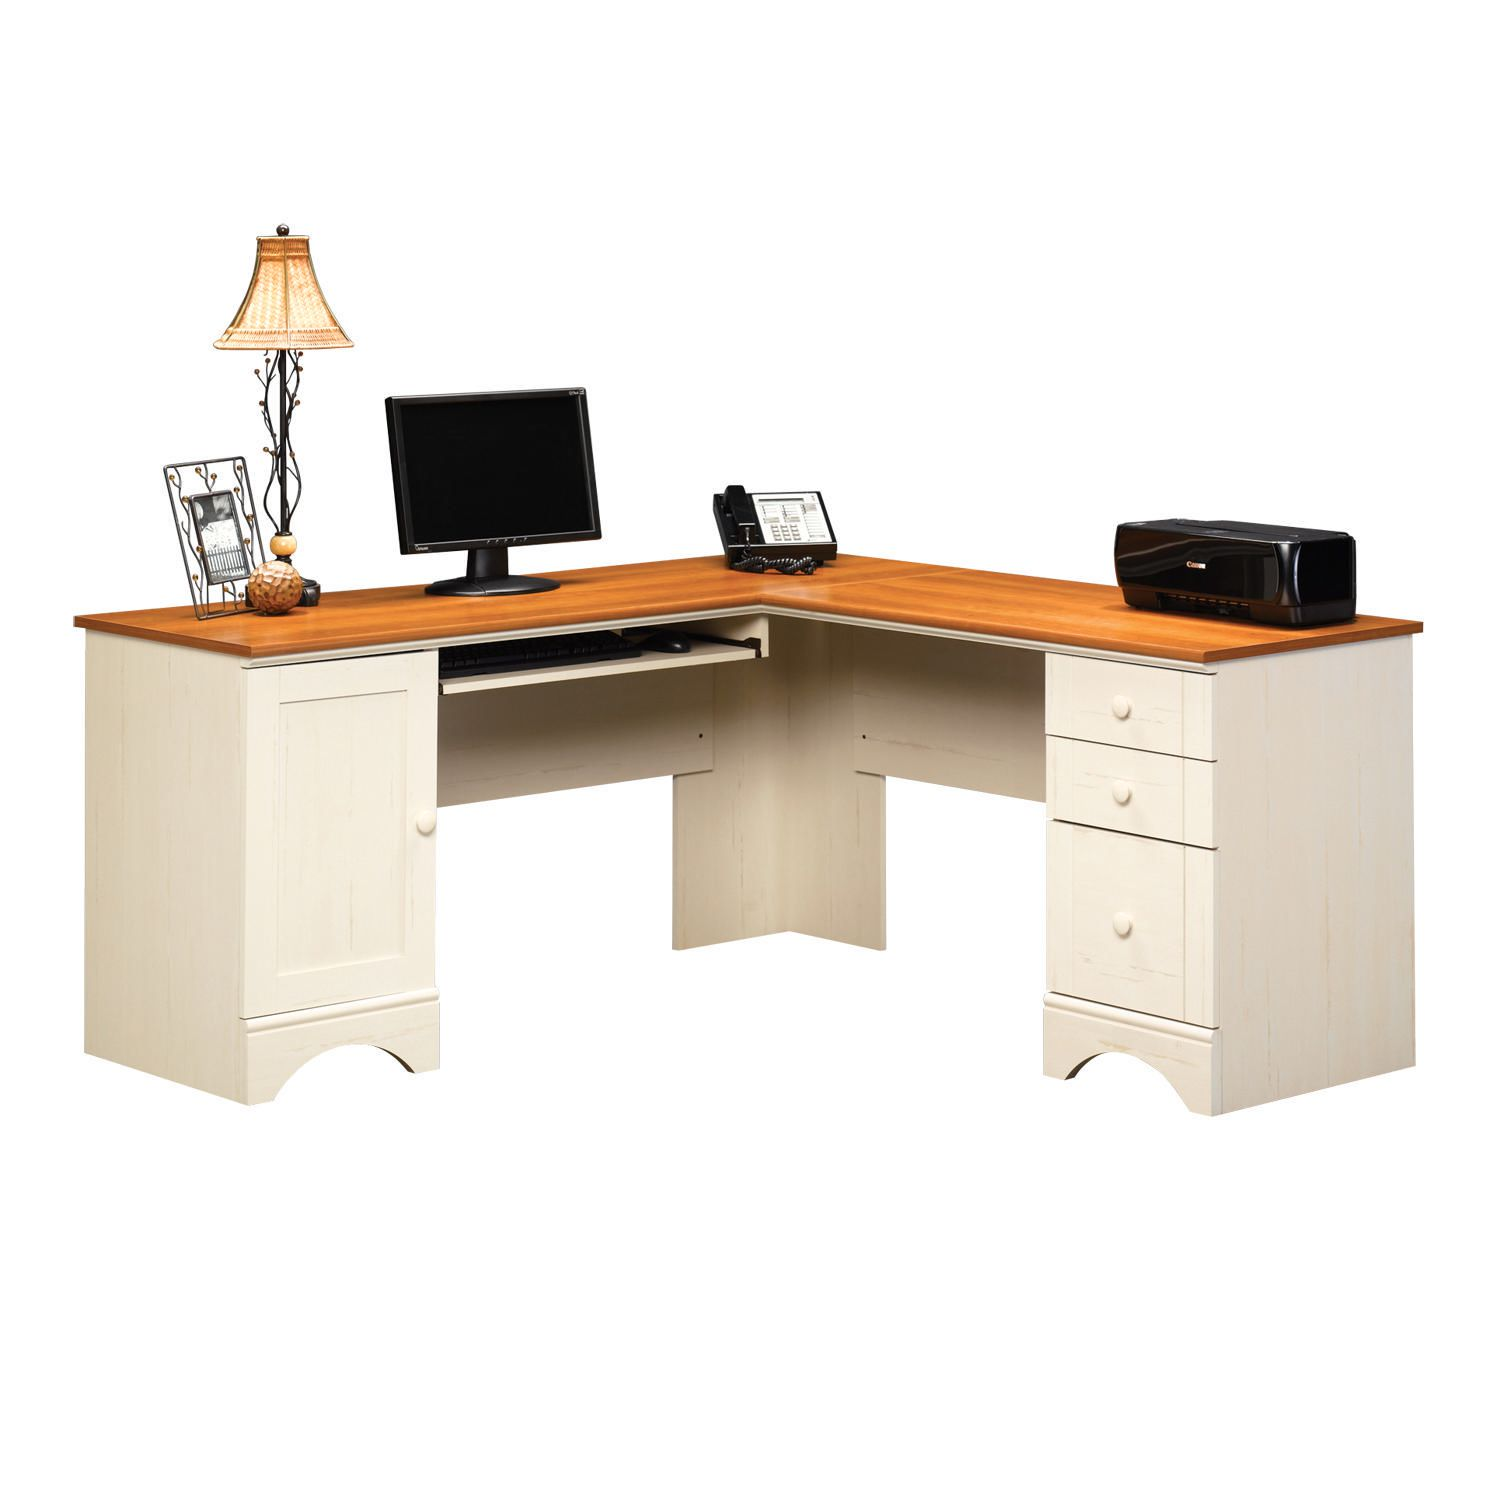 walmart sauder accents american desk canada with antiqued harbor view ip computer white cherry finish en corner